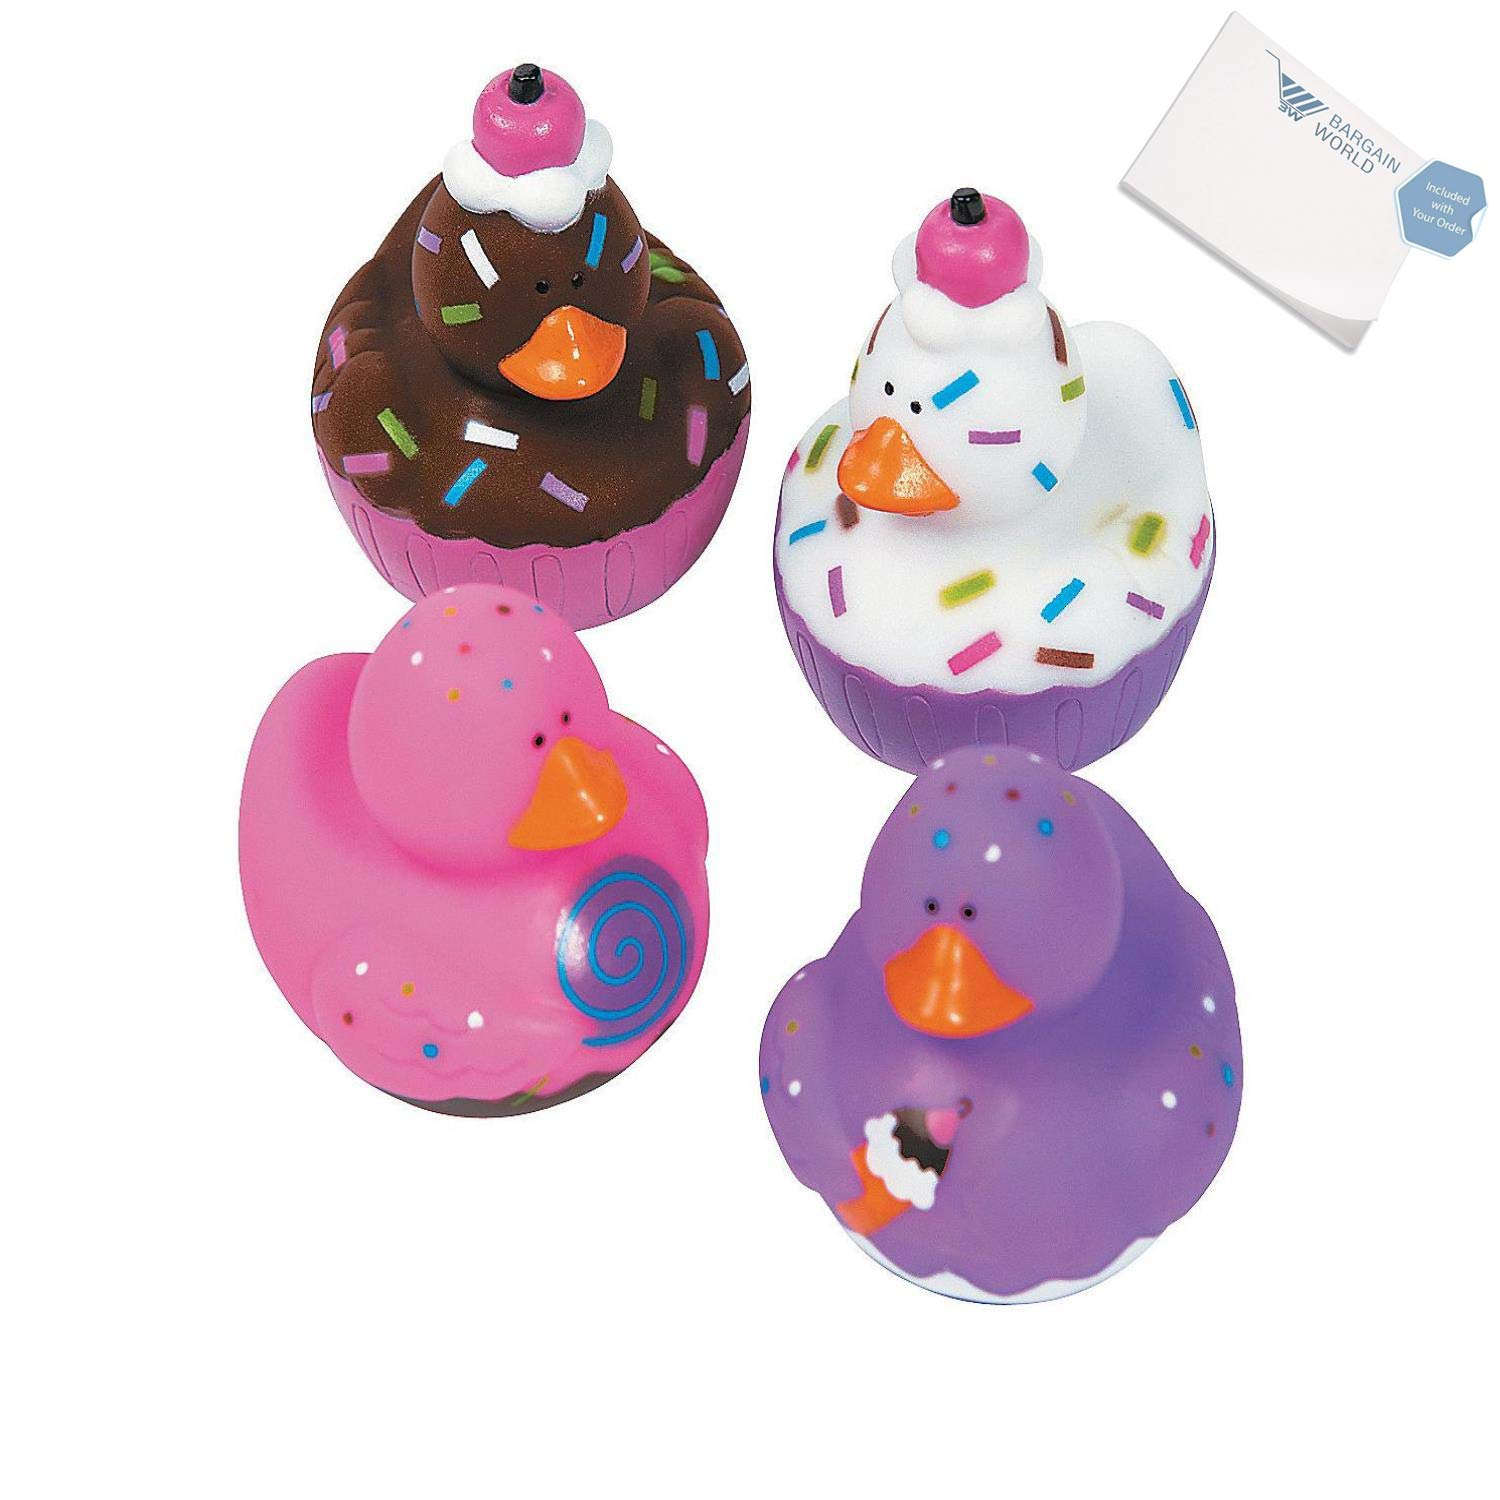 Bargain World Vinyl Sweet Treats Rubber Duckies (With Sticky Notes)